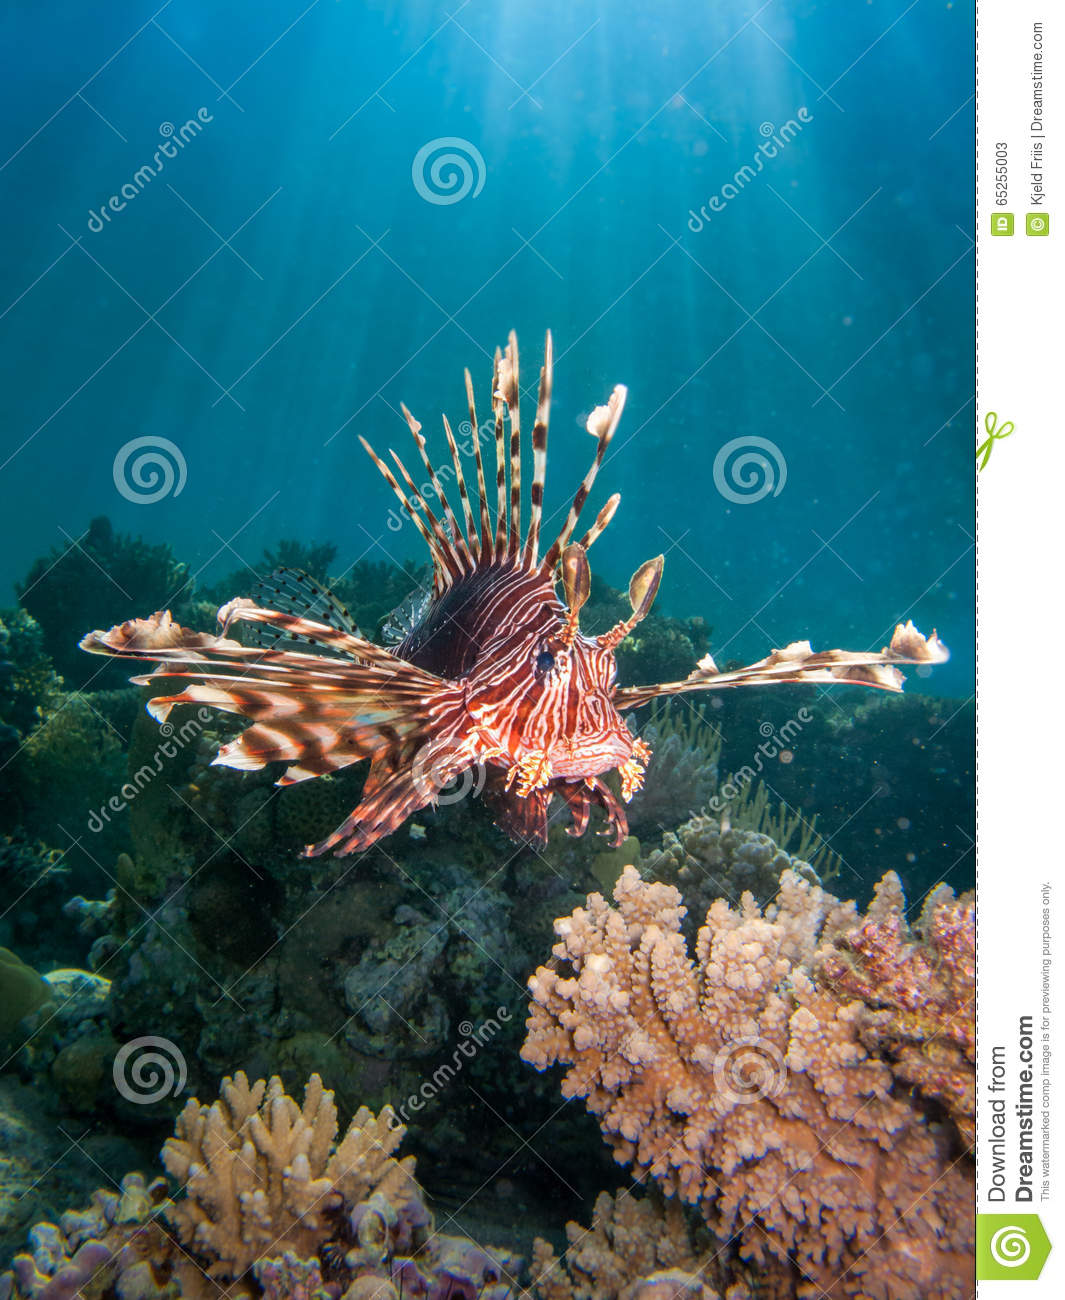 Coral Reef Background: Lionfish Over Coral Reef With Sun Beams Stock Image